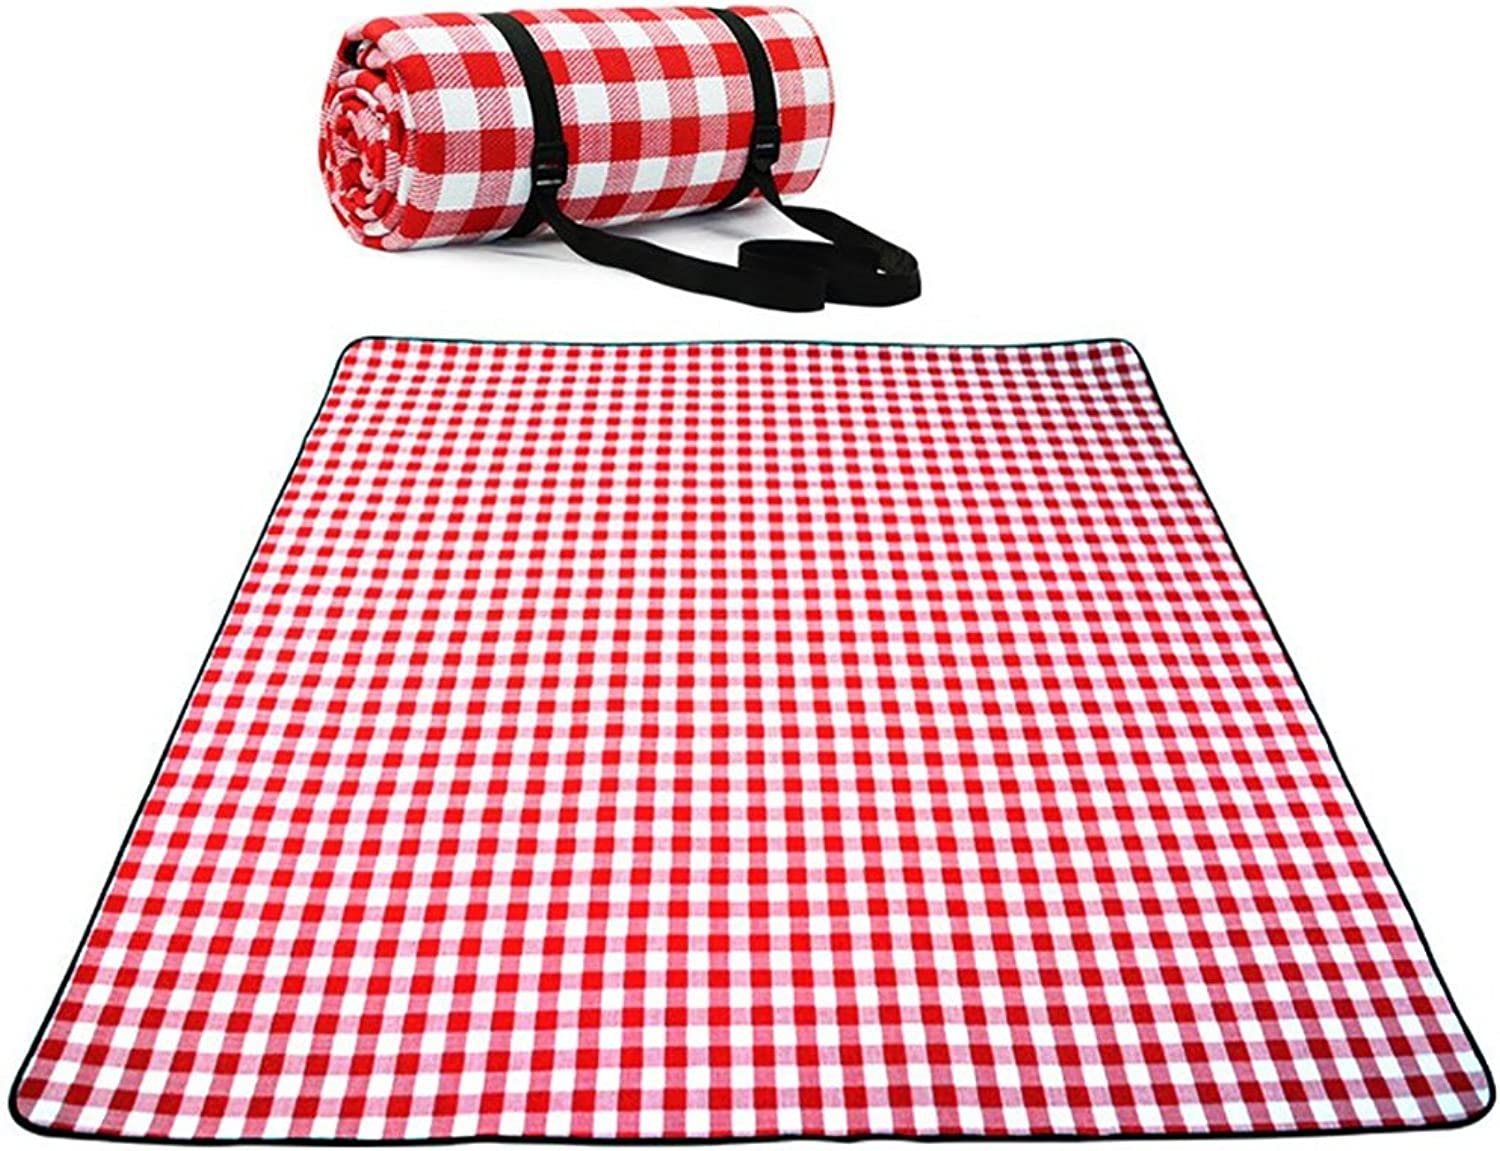 81aed7629bcf for Rug Picnic Foldable Backing, Waterproof Blanket Picnic Padding ...